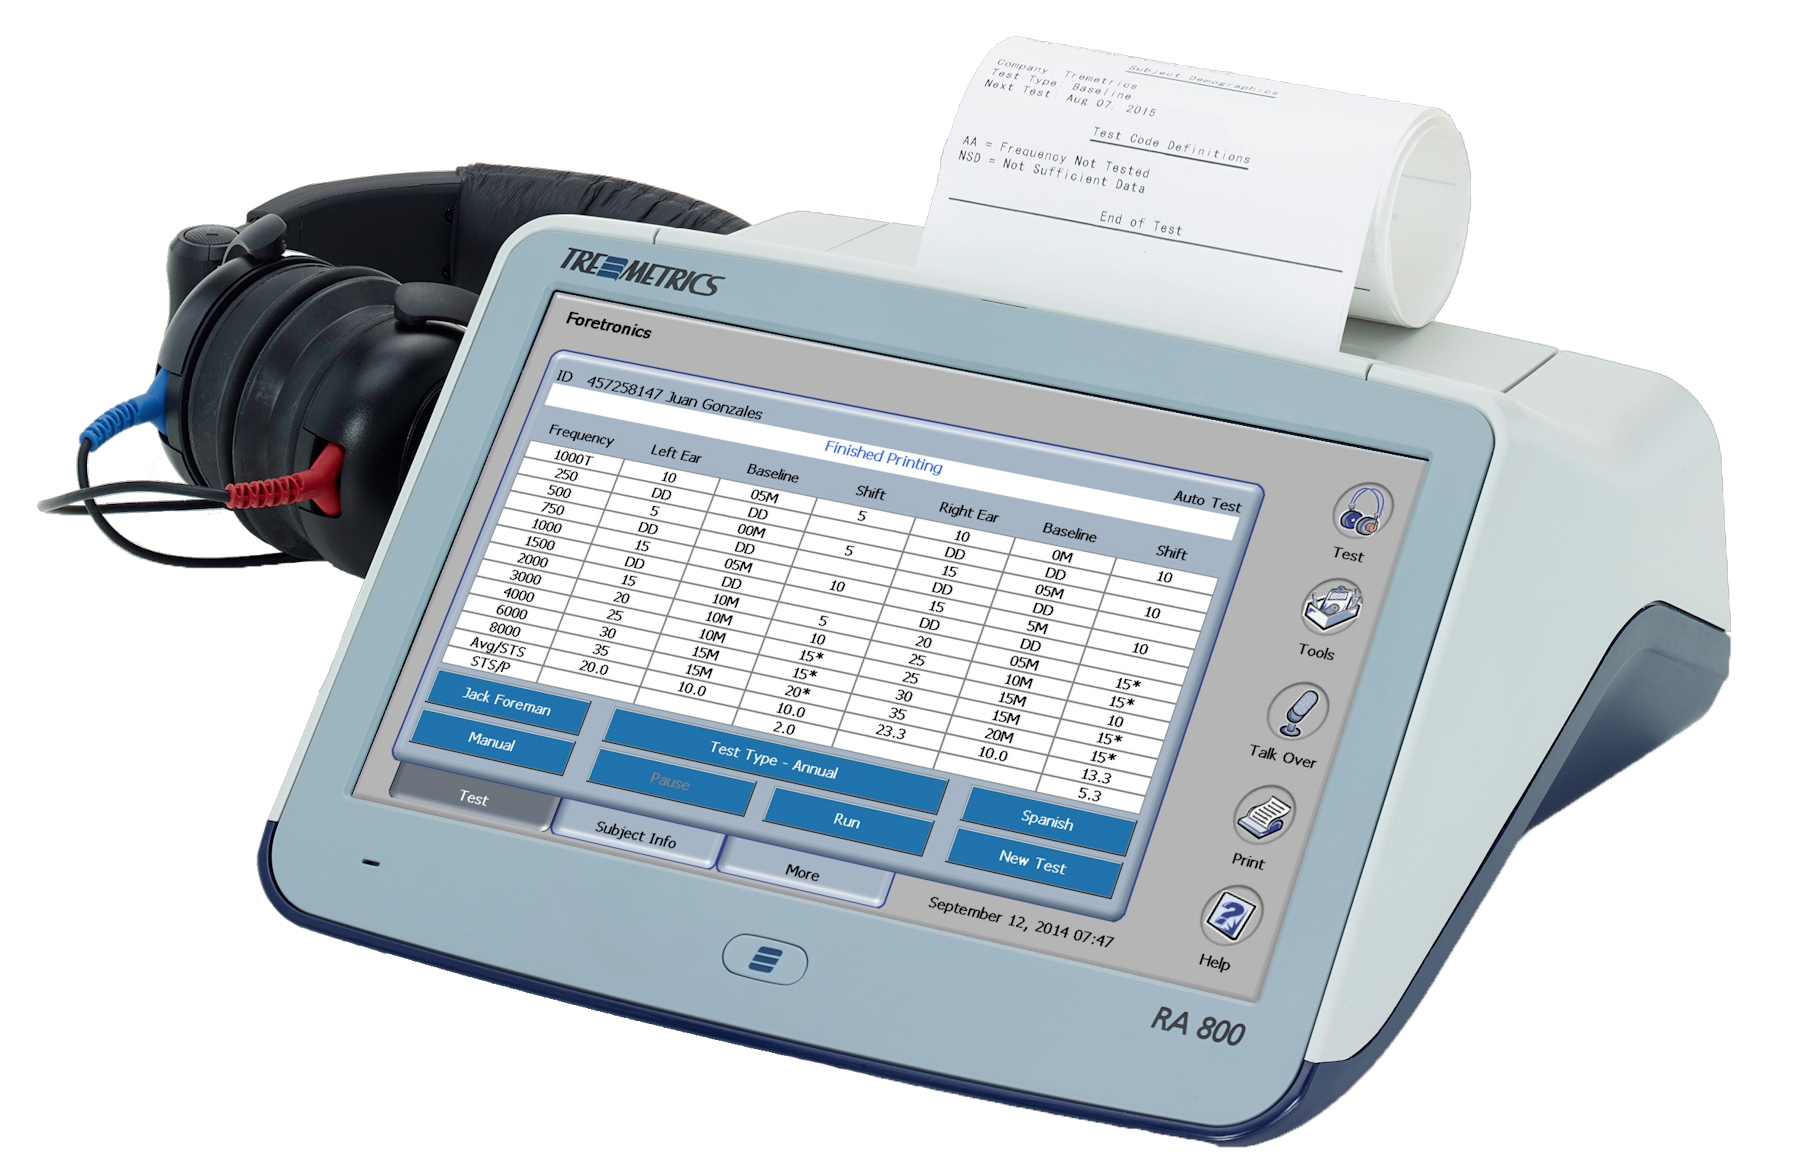 Tremetrics Ra 500 Audiometer Between The Two No One Is